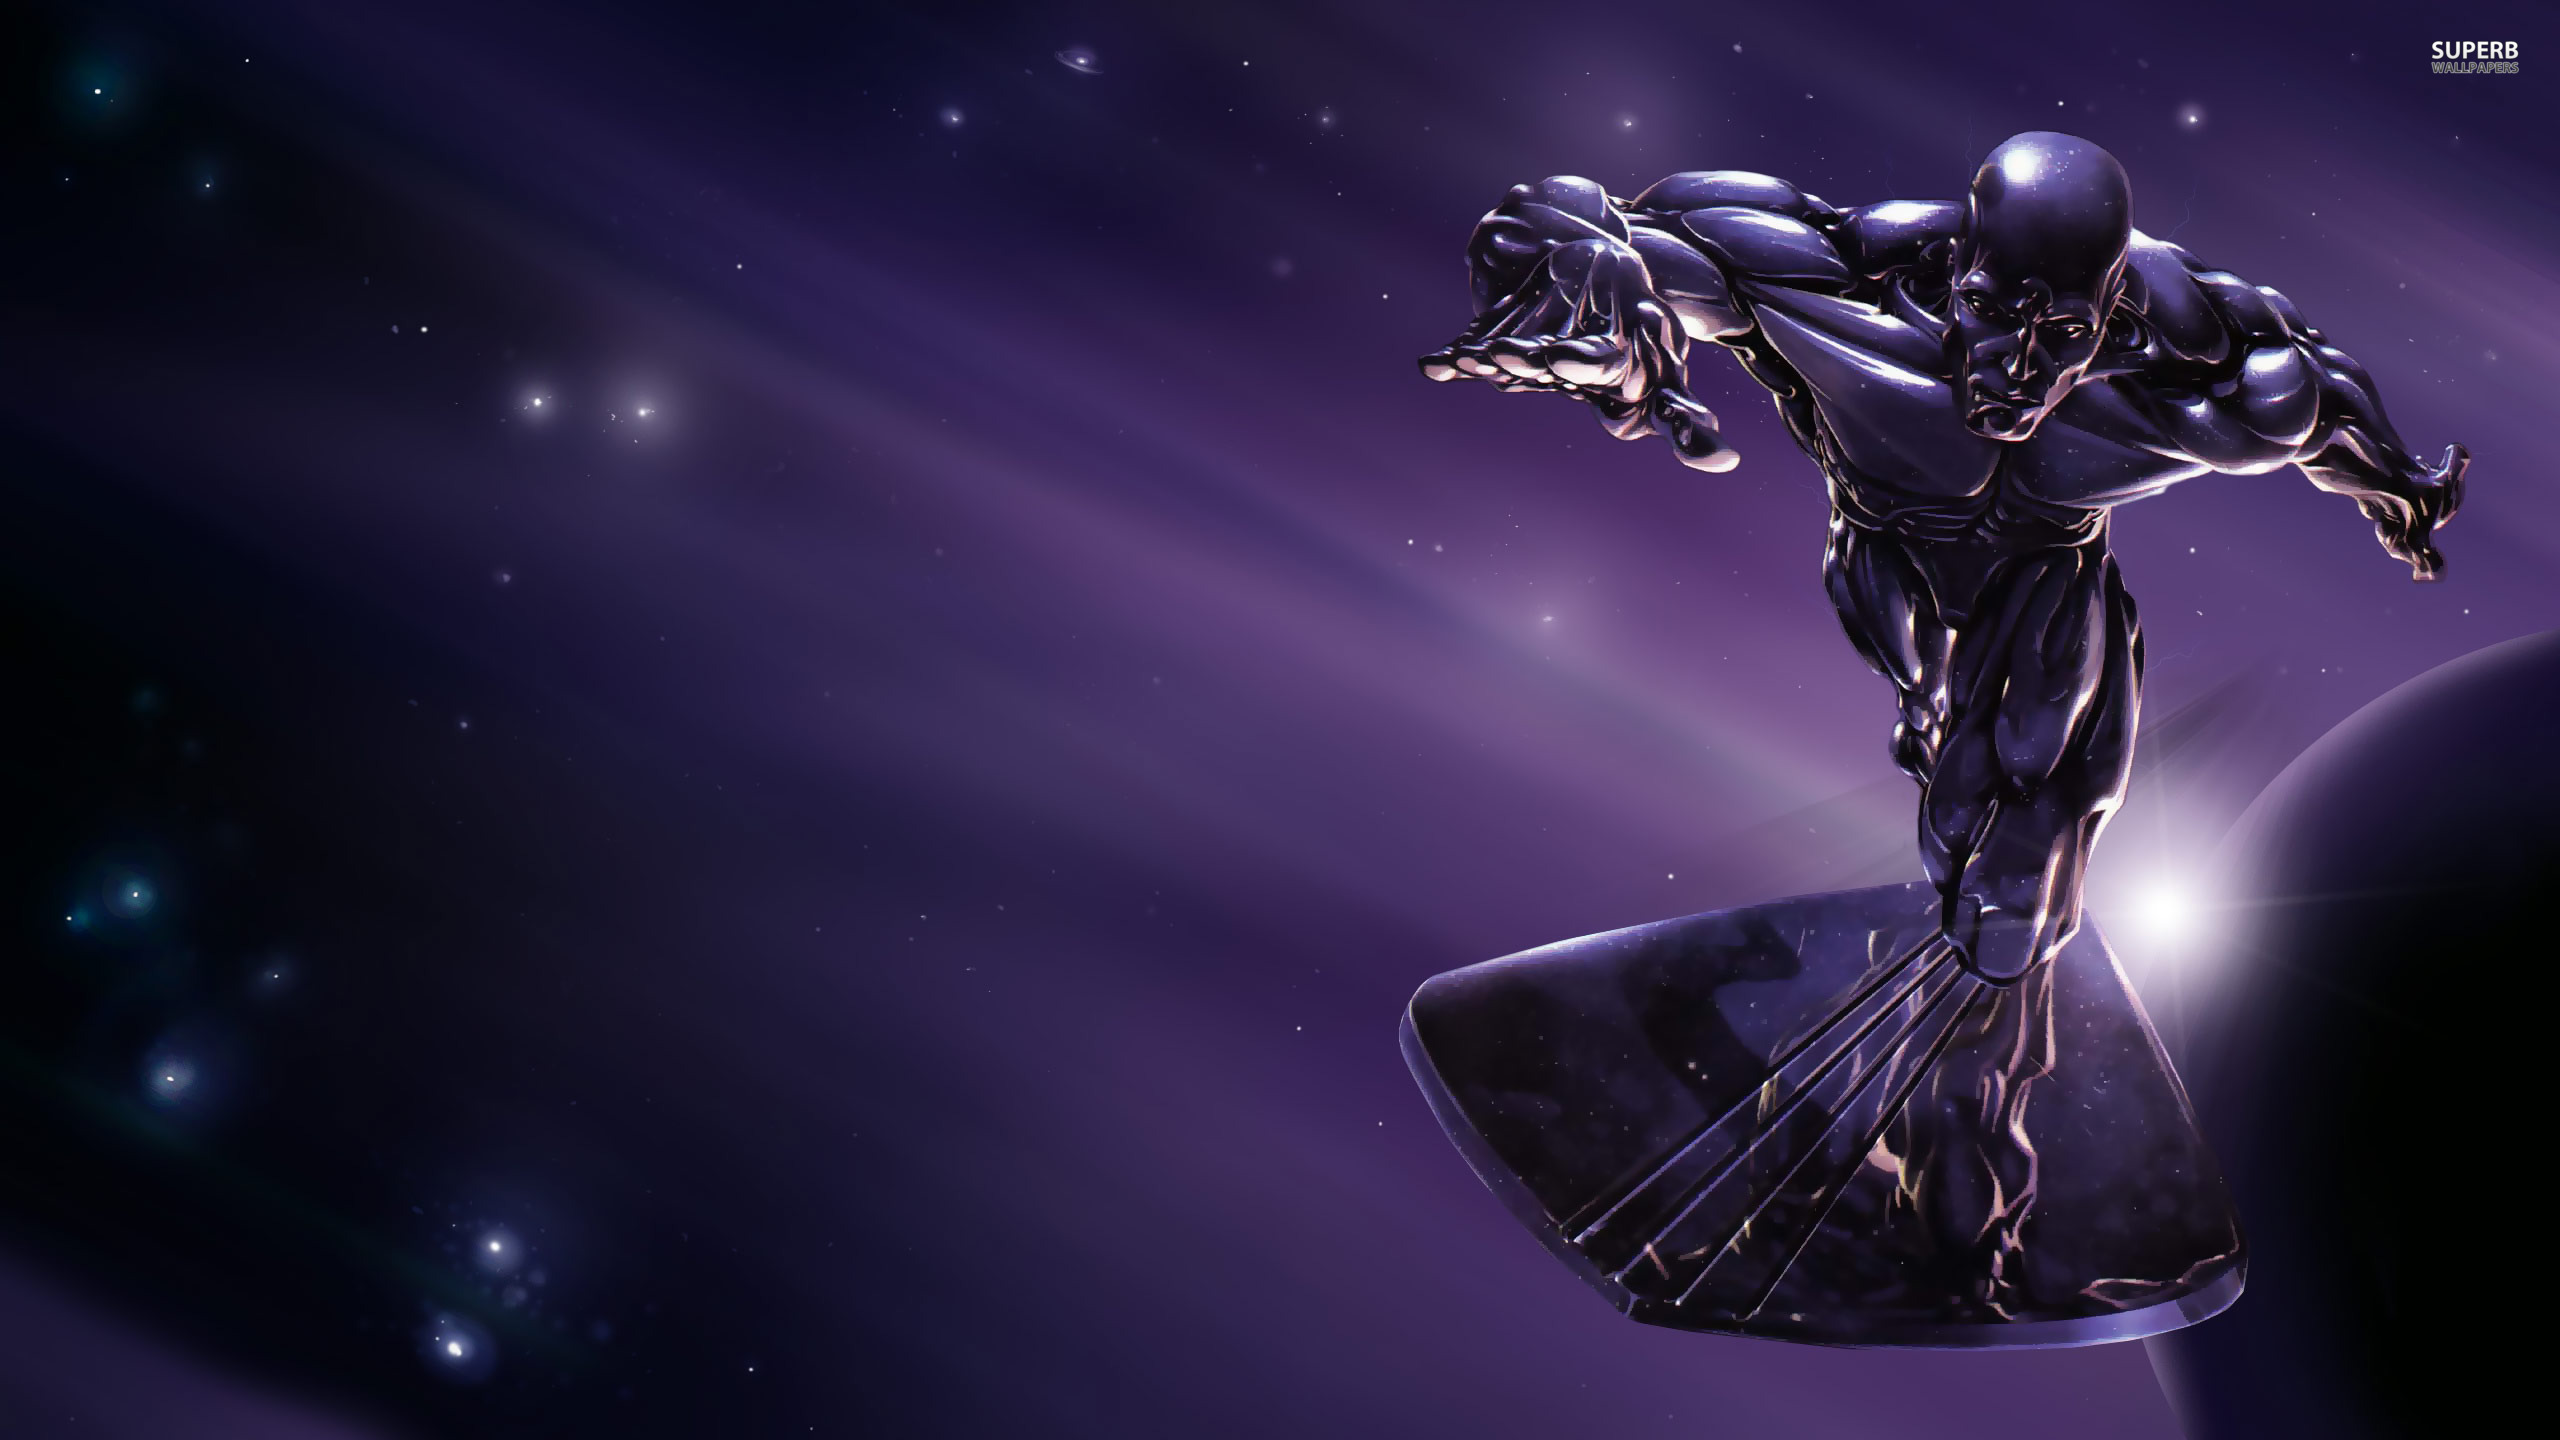 Fantastic 4: Rise of the Silver Surfer wallpaper 2560x1440